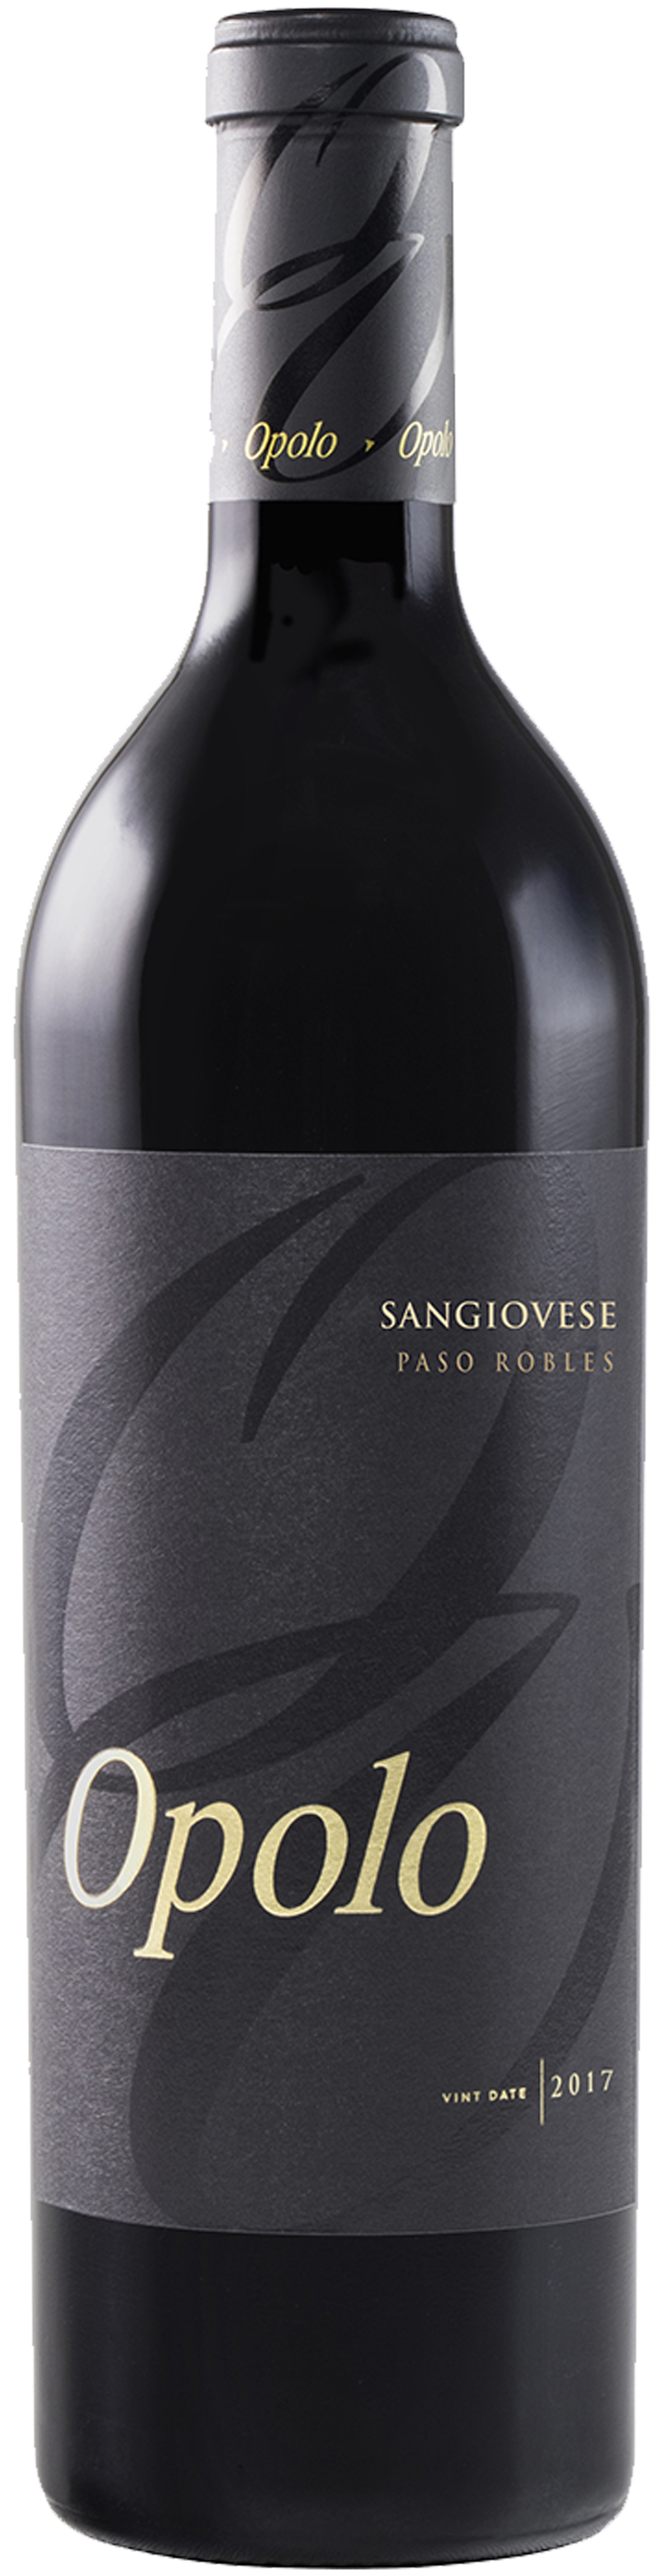 Product Image for 2017 Sangiovese